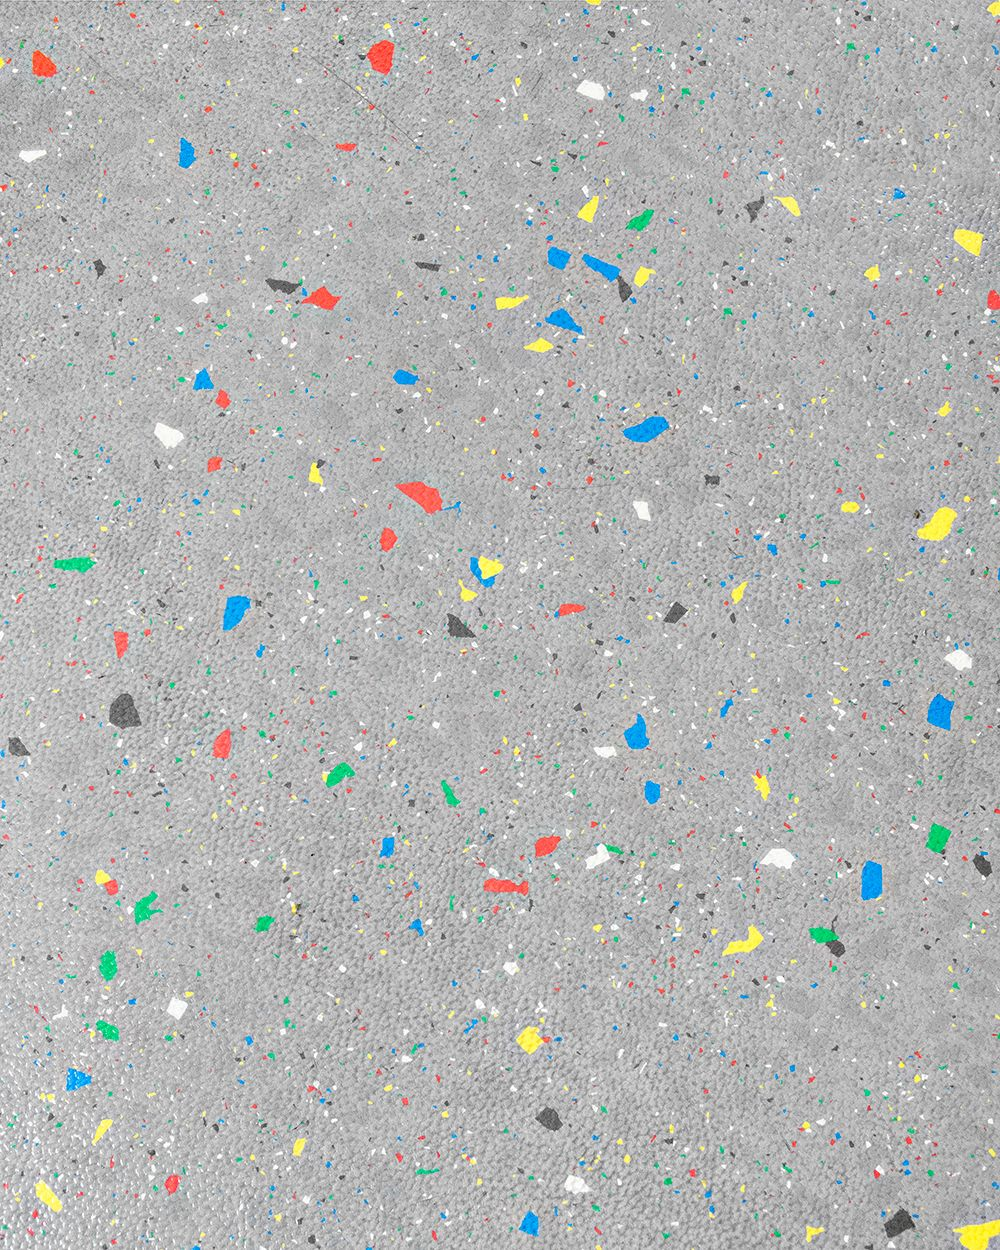 Rubber floor mats jhb - Some Kind Of Speckled Linoleum Or Rubber Flooring Possibly From Tarkett Or One Of Those Outfits